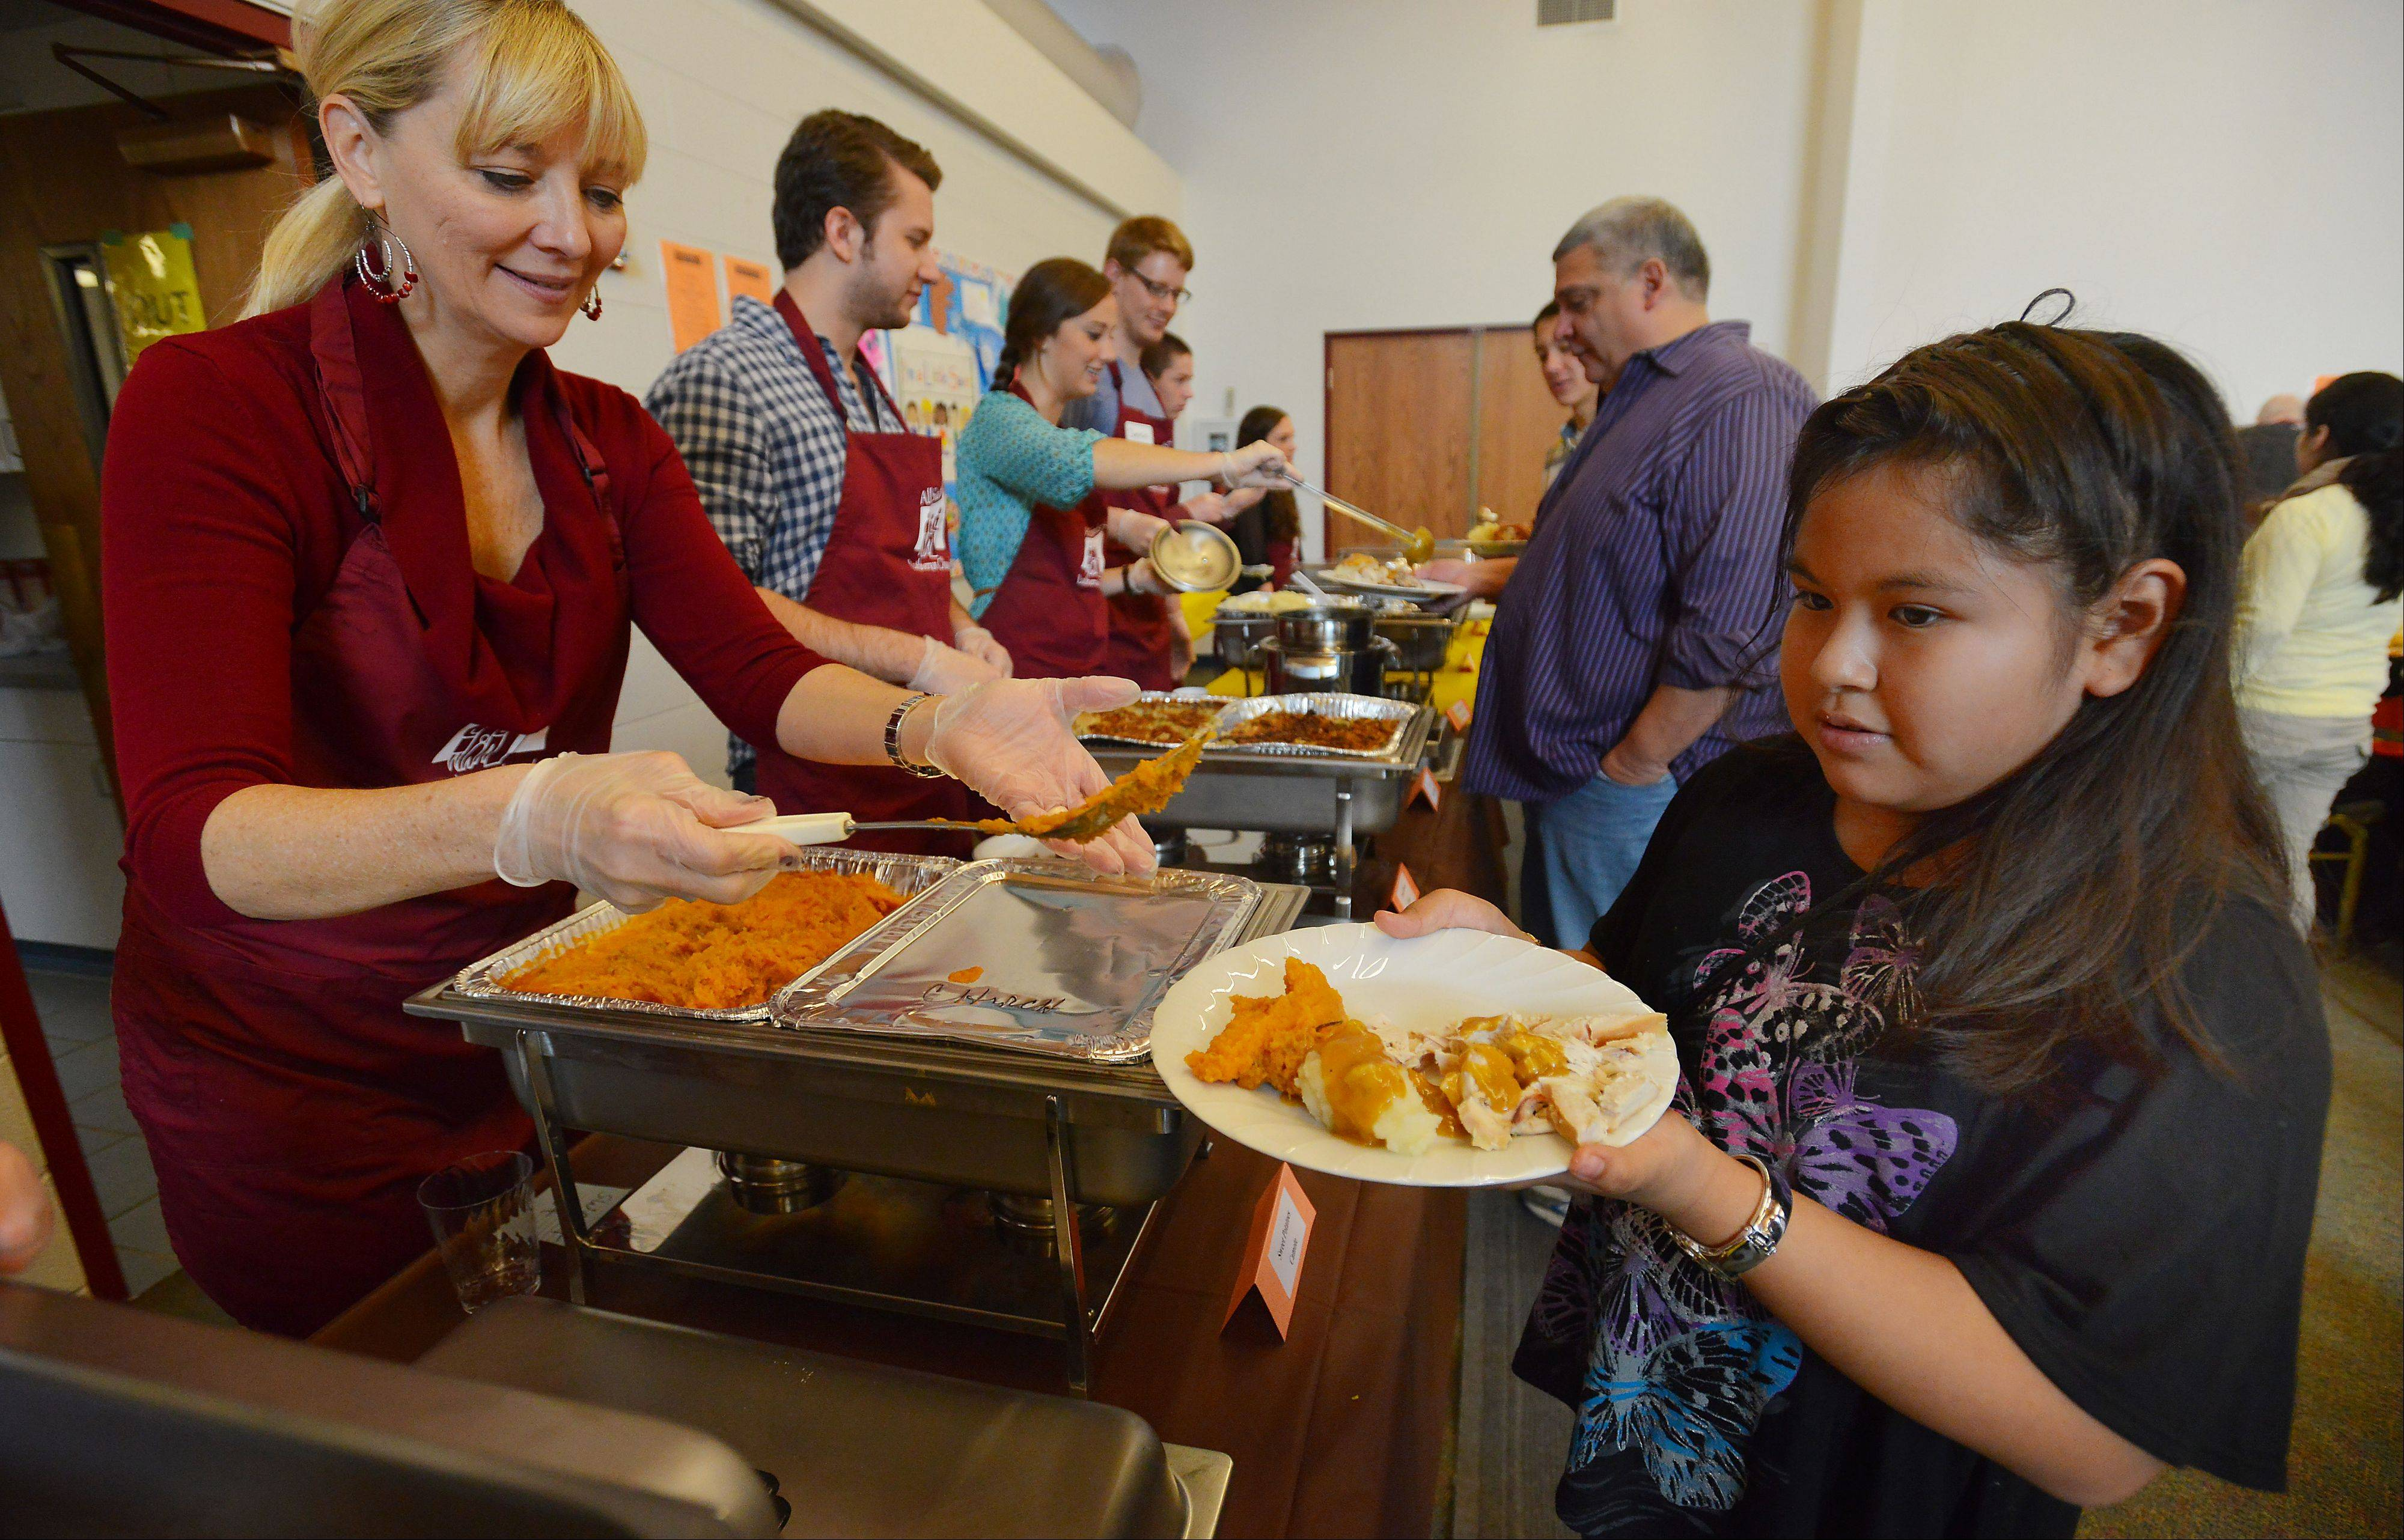 Images: Thanksgiving in the suburbs